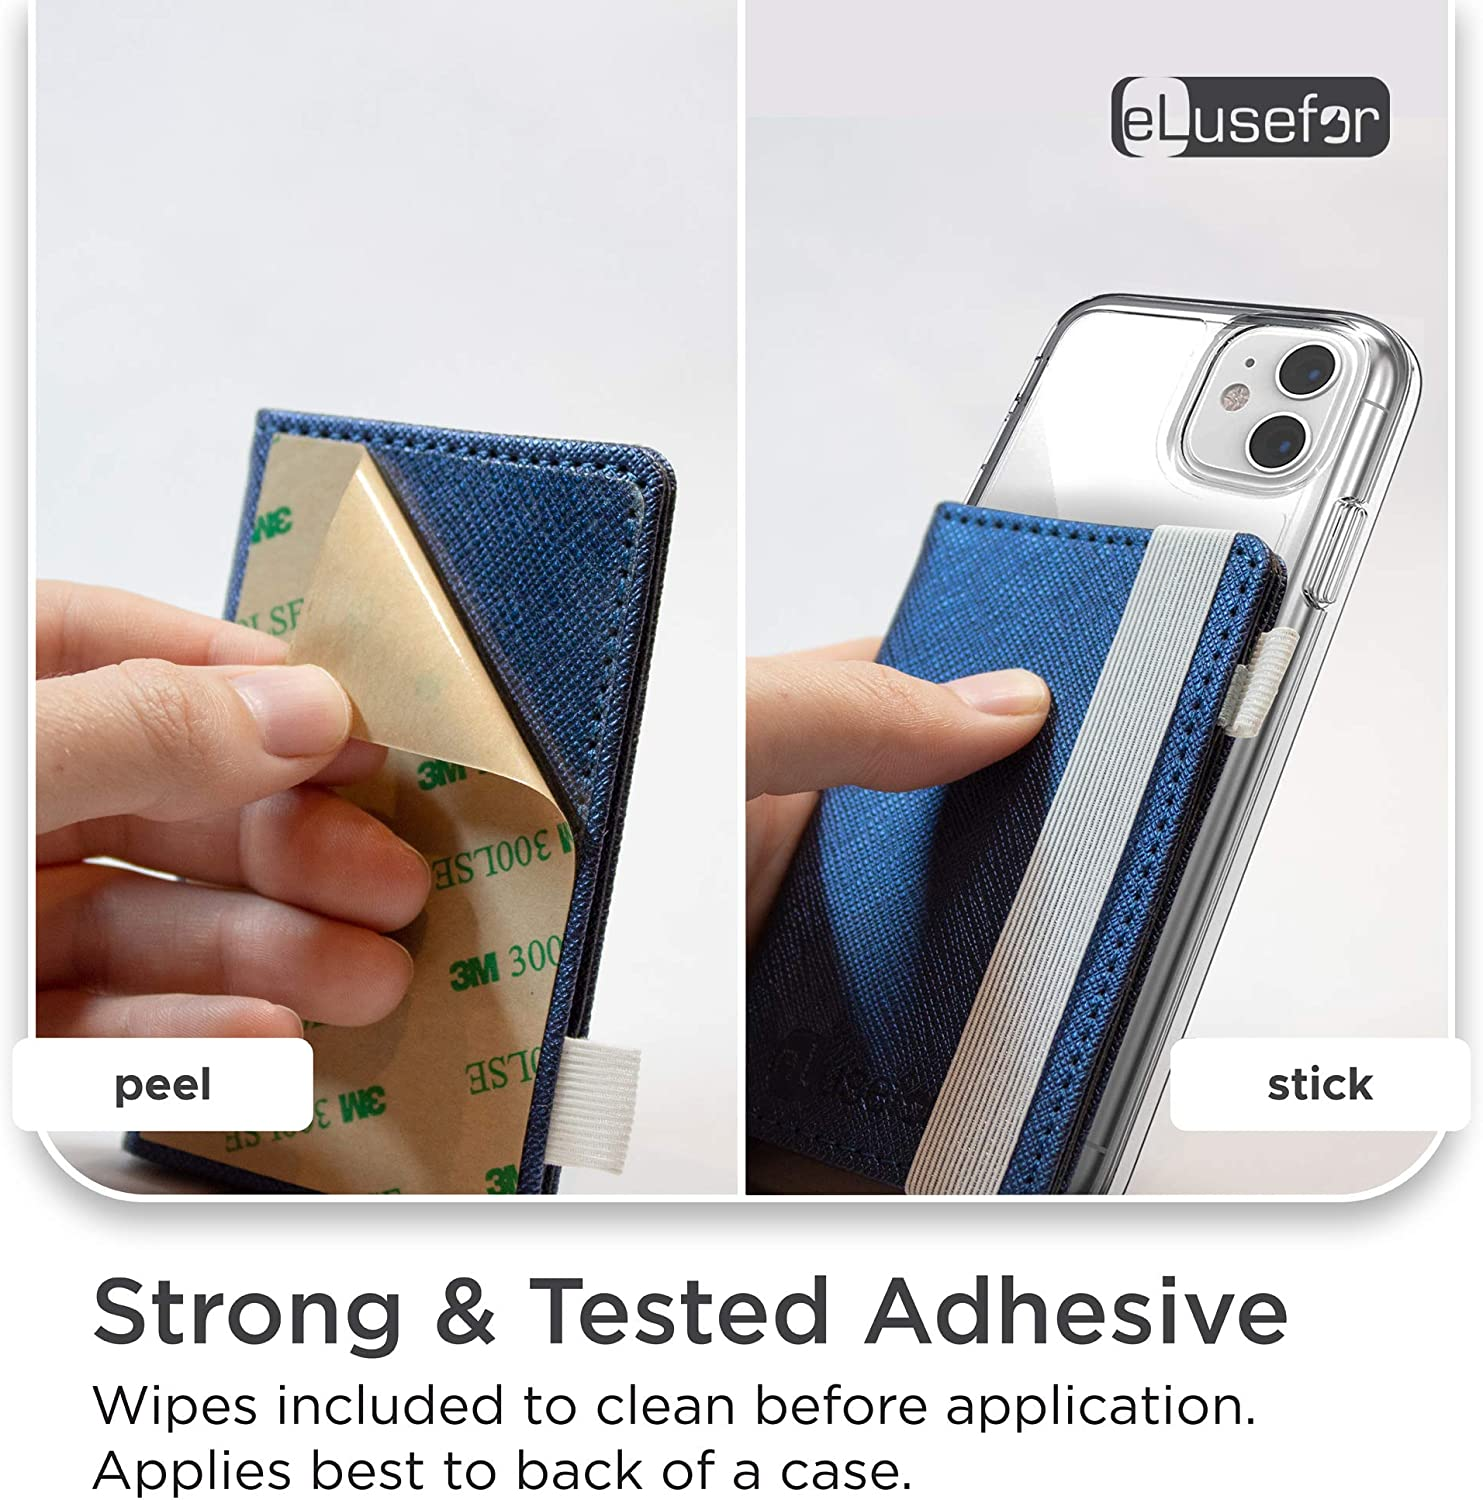 Buy Stick-On Phone Wallet for Back of iPhone or Android Case   6 Sleeve  Credit Card Holder - Pocket for Cards, Money & ID - Built-in Stand -  Waterproof Material - Travel,